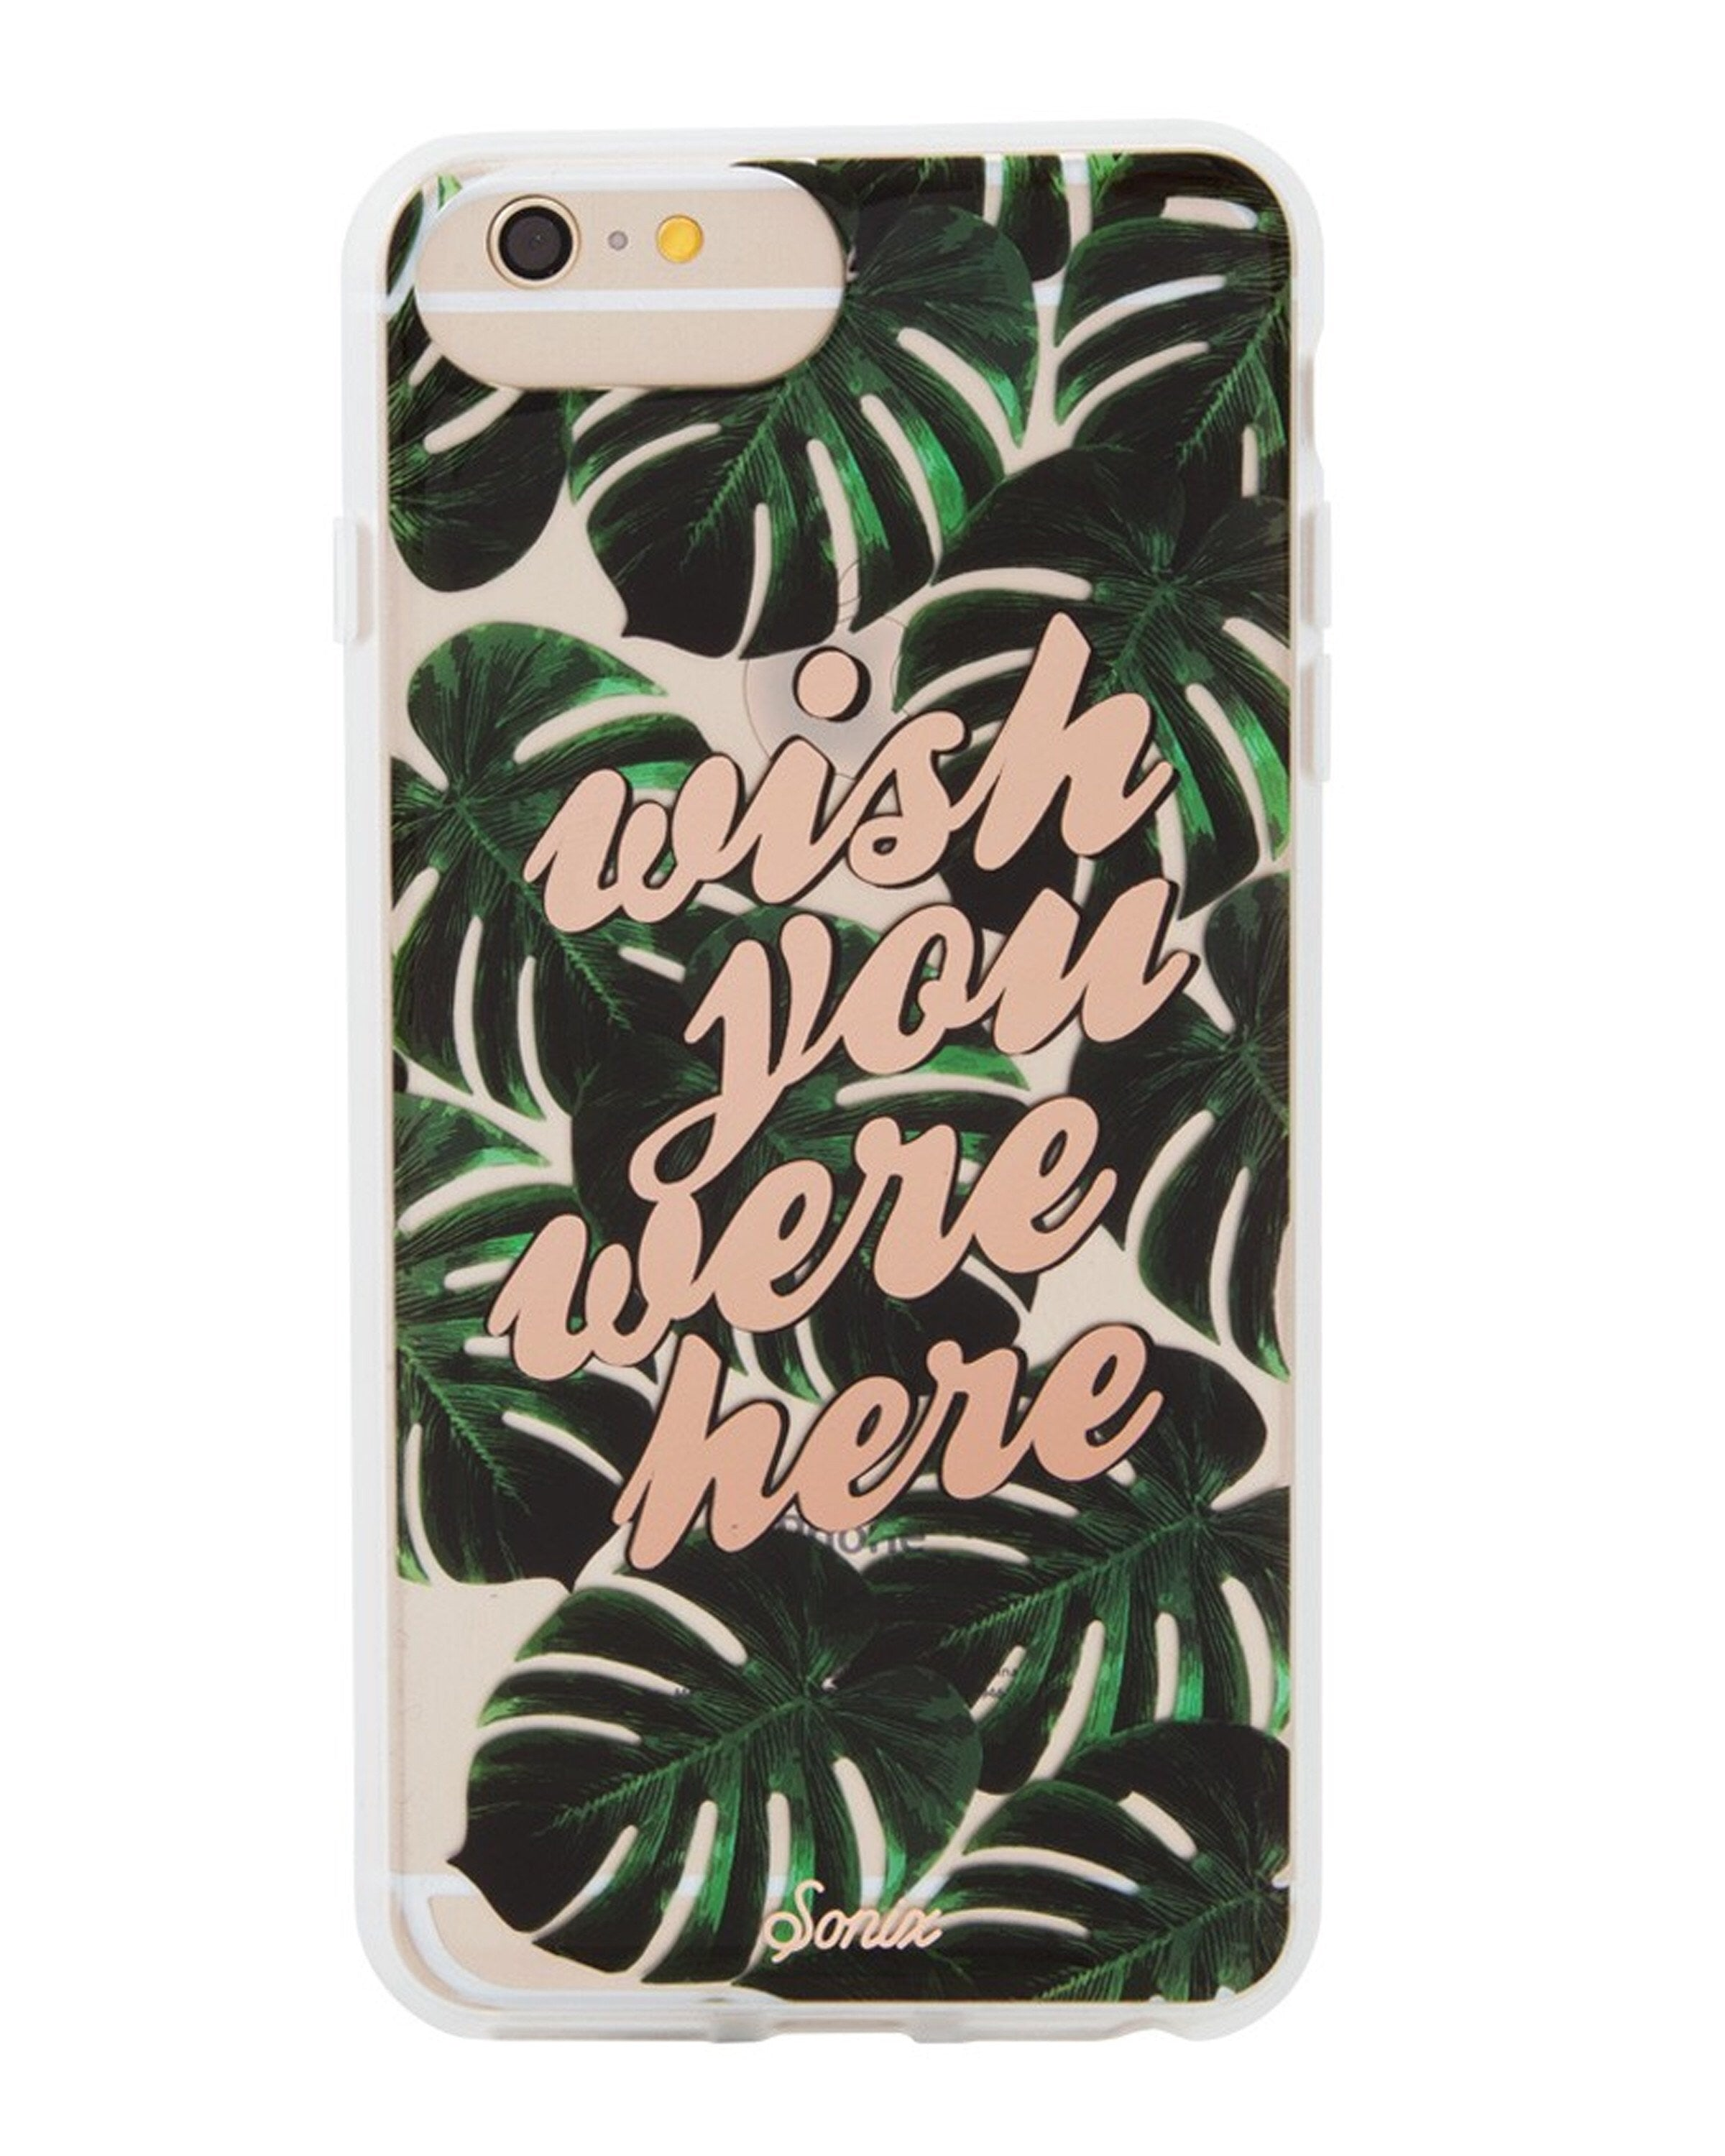 Wish You Were Here Iphone Case 6s, 7, 8 by Sonix - Magnolia Jewels & More